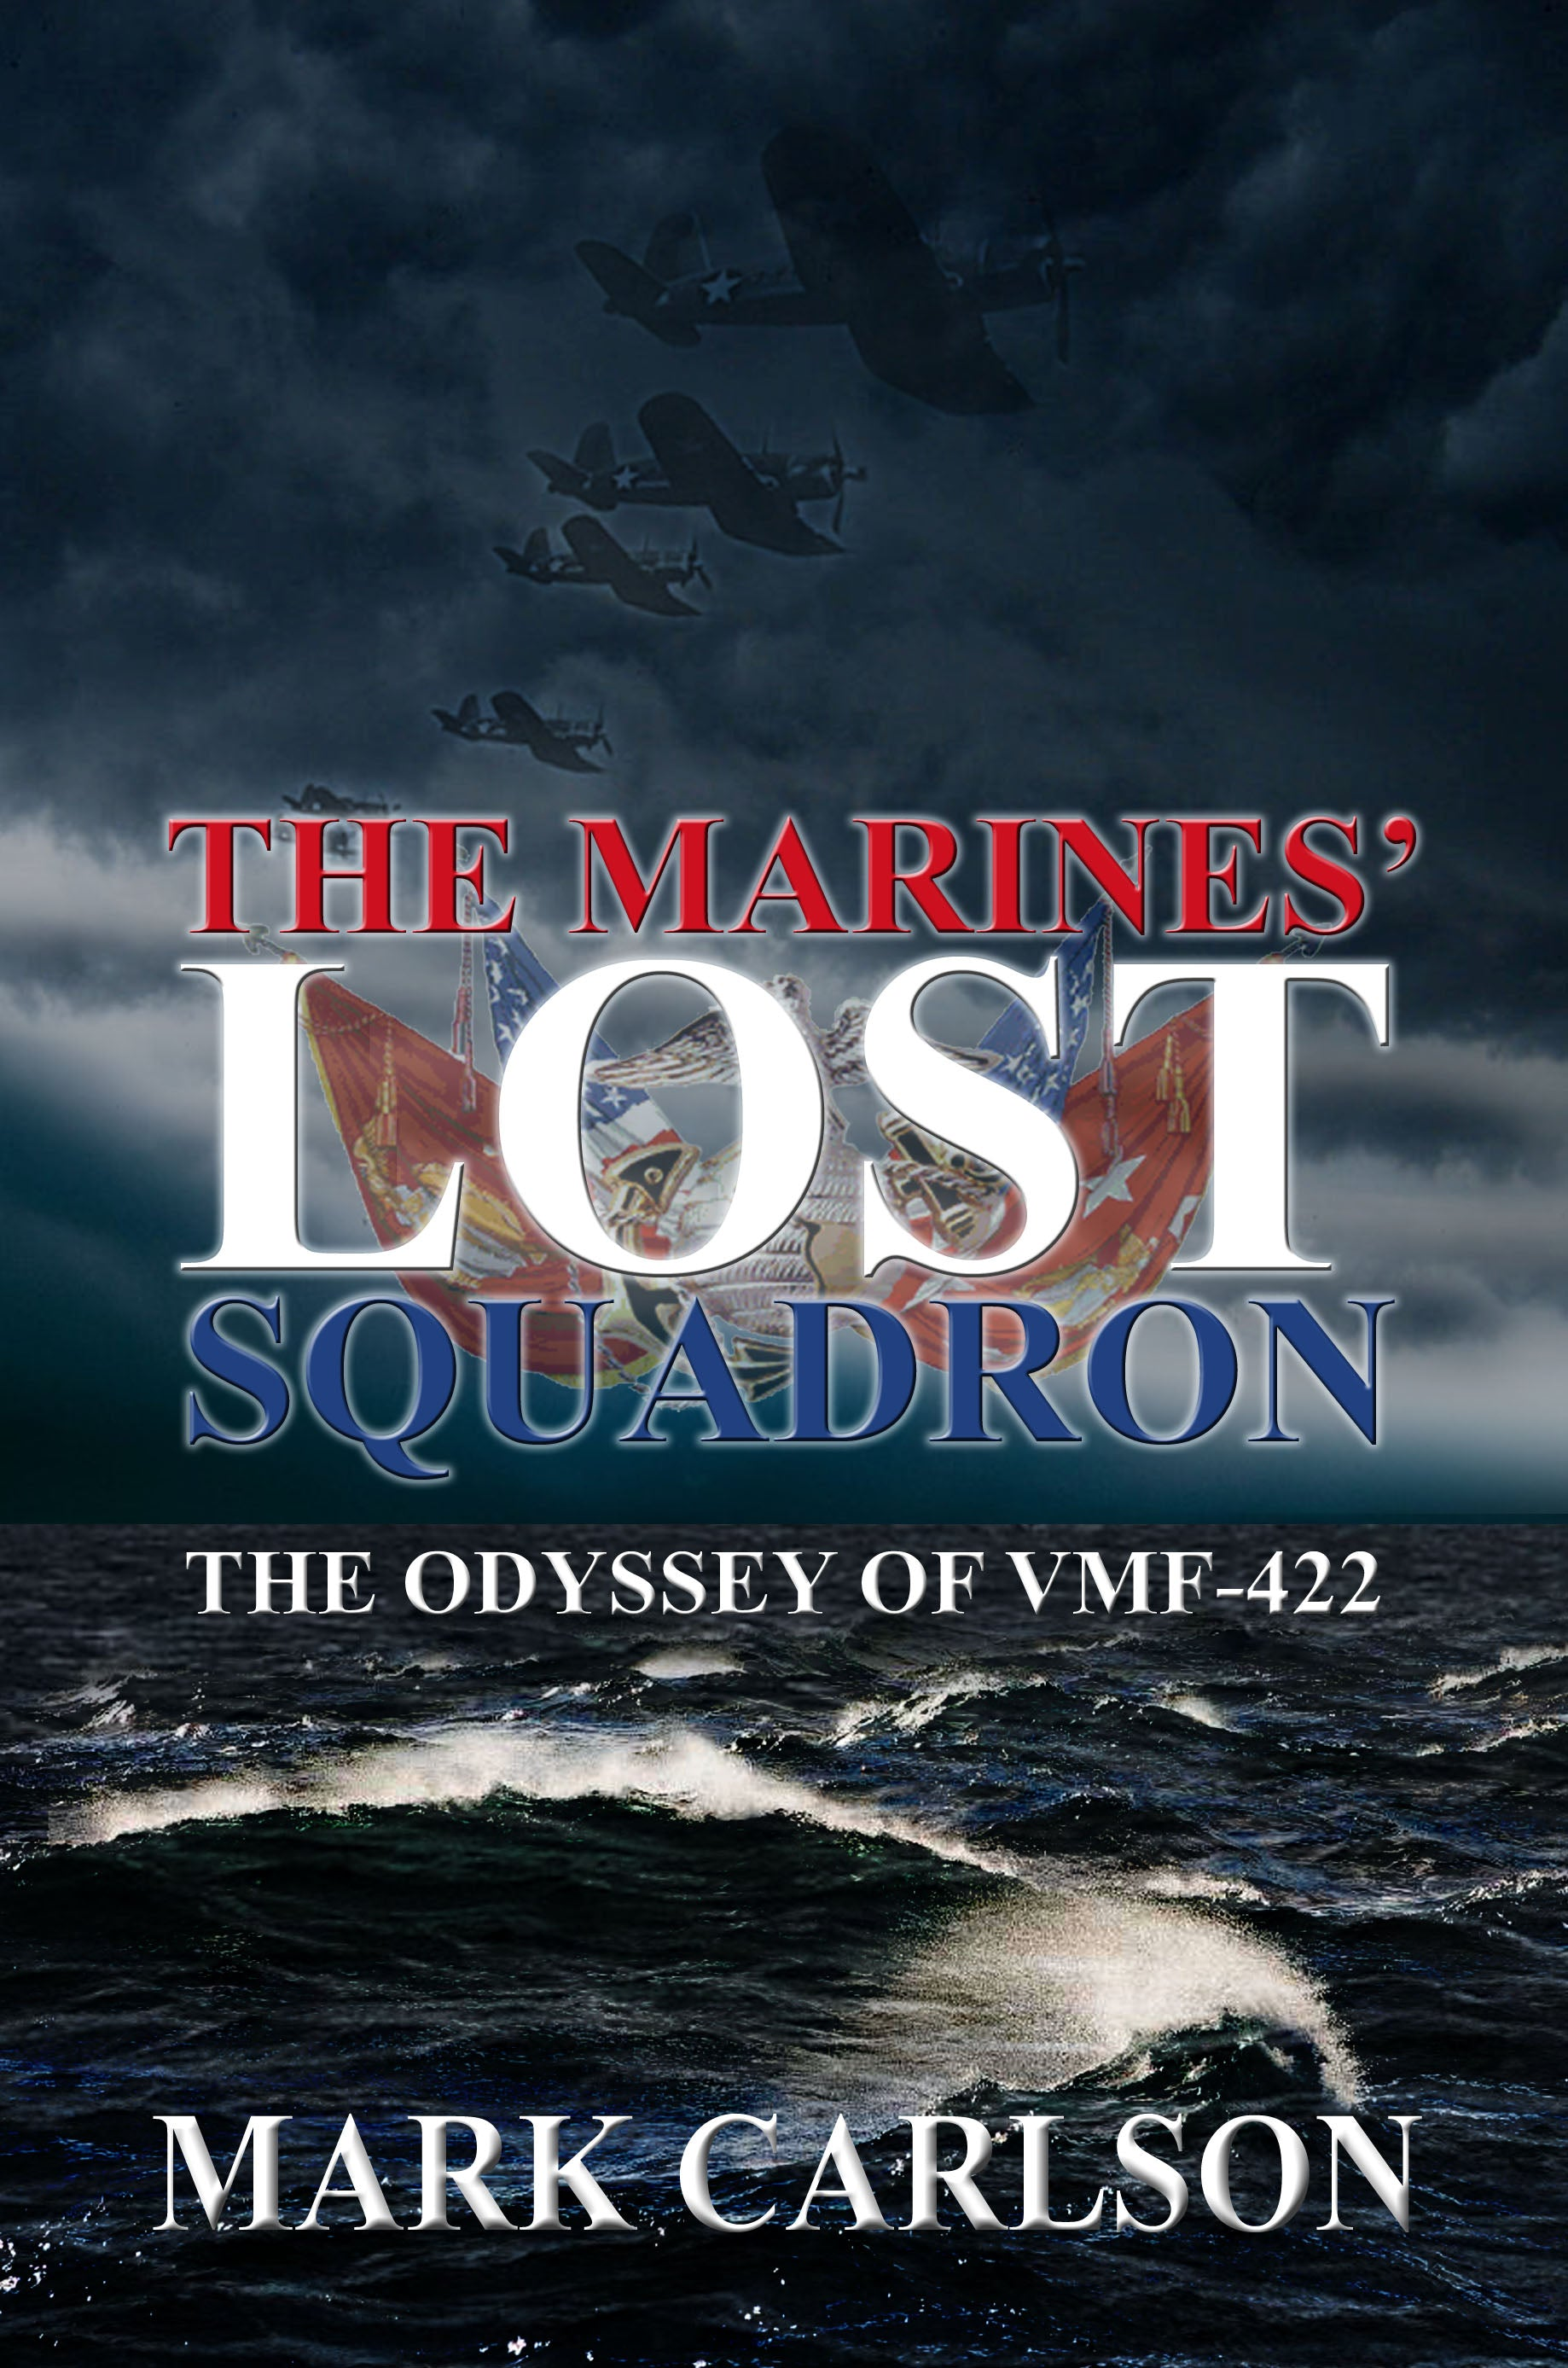 "Mystery of lost Marine air squadron in WW2 investigated by Mark Carlson in new book ""The Marines' Lost Squadron"""